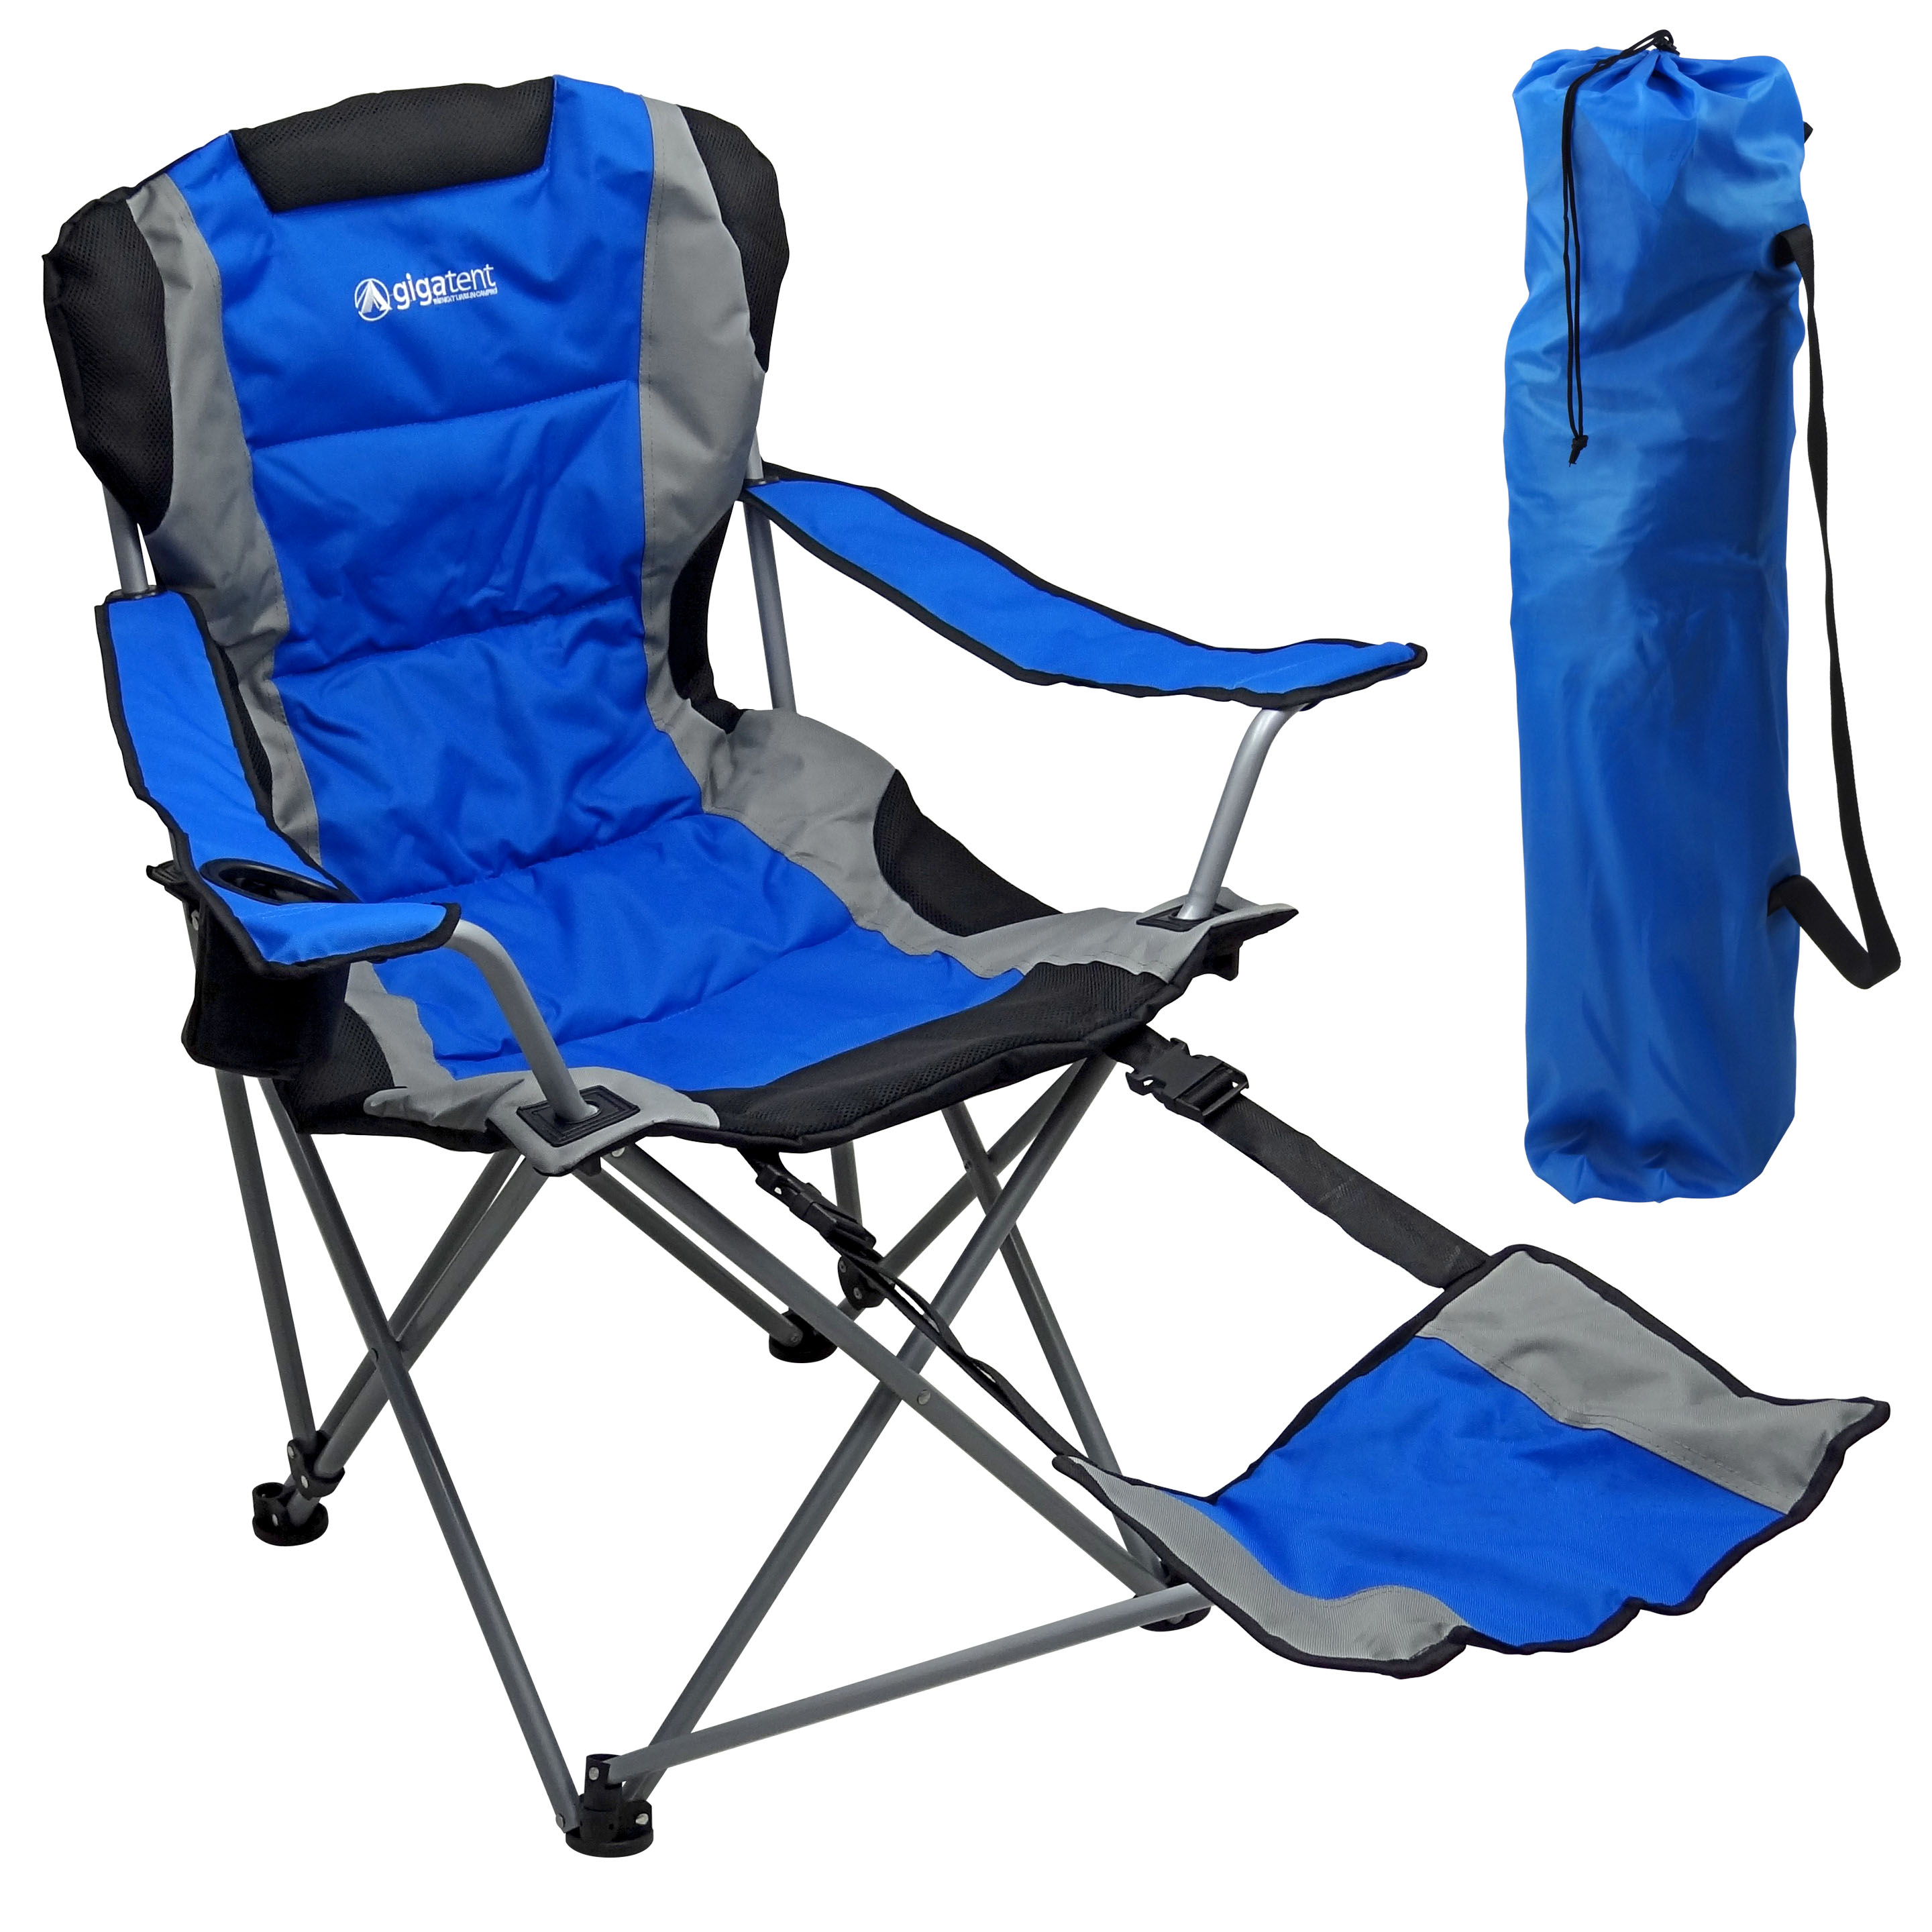 Delicieux GigaTent Folding Camping Chair With Footrest